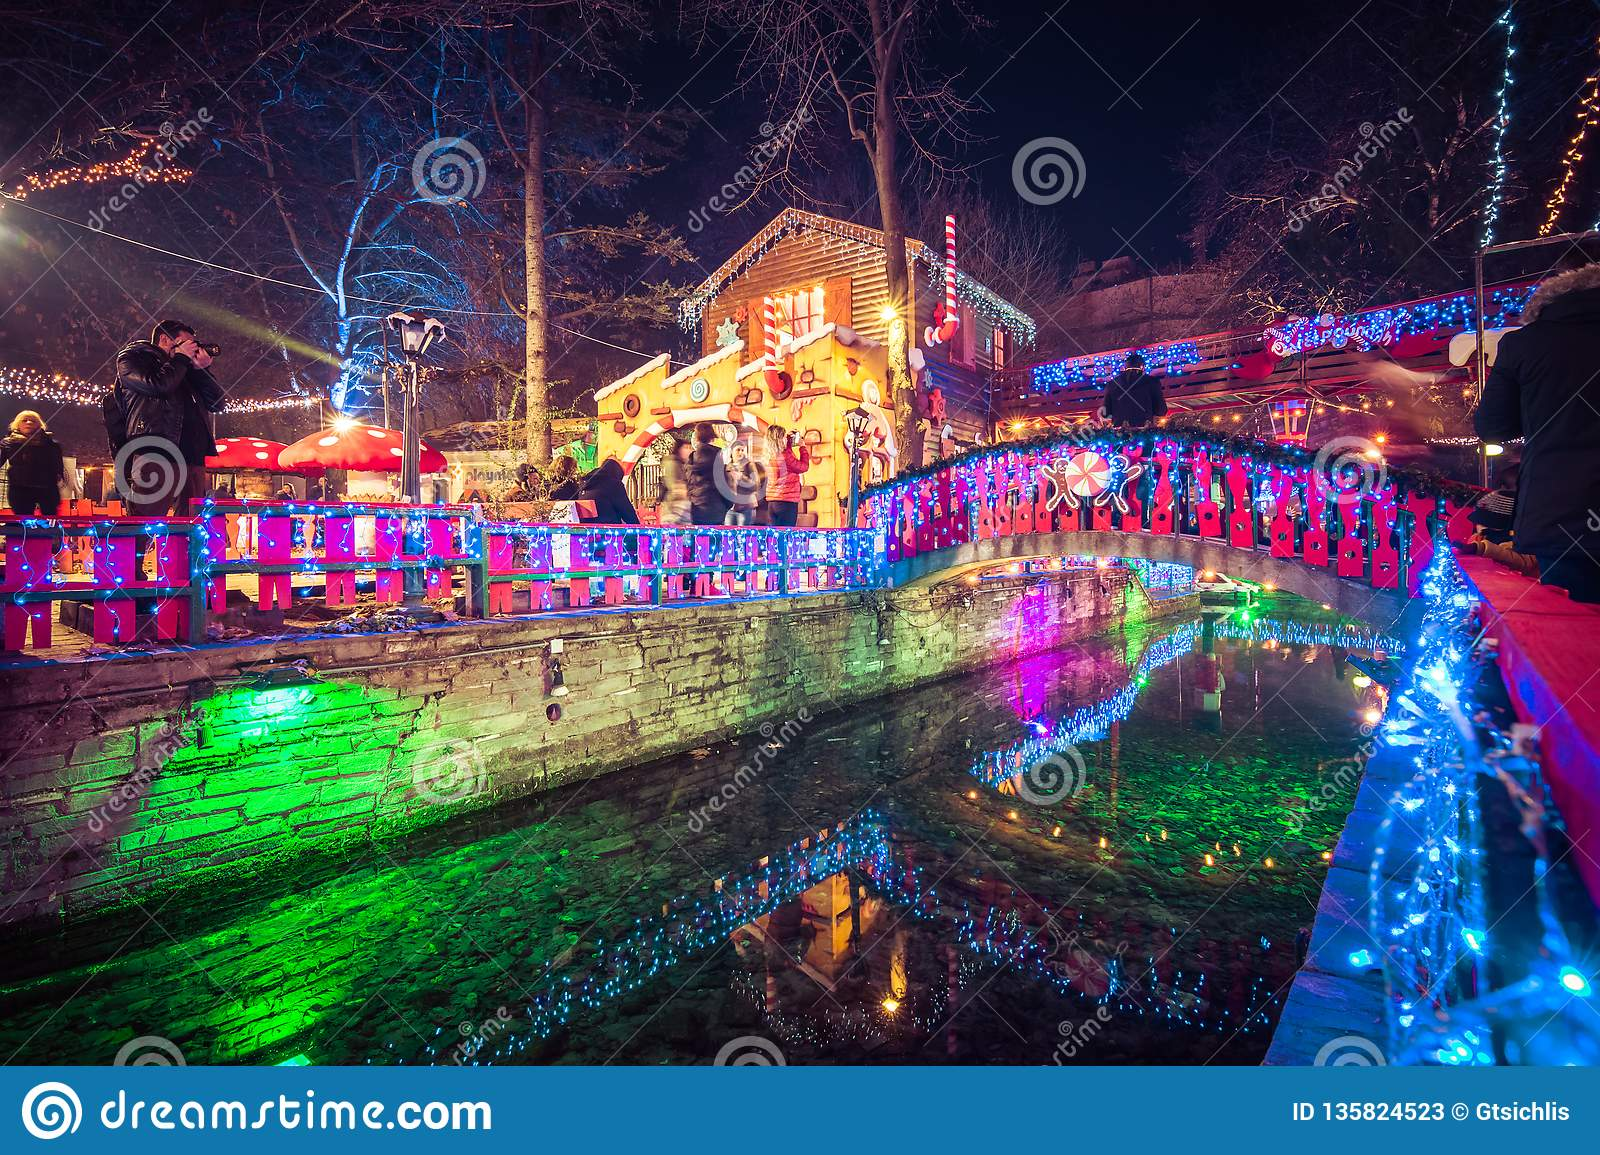 """Night View Of The Greek Christmas Market """"Oneiroupoli"""" With Lights, Figurines Around The River ..."""